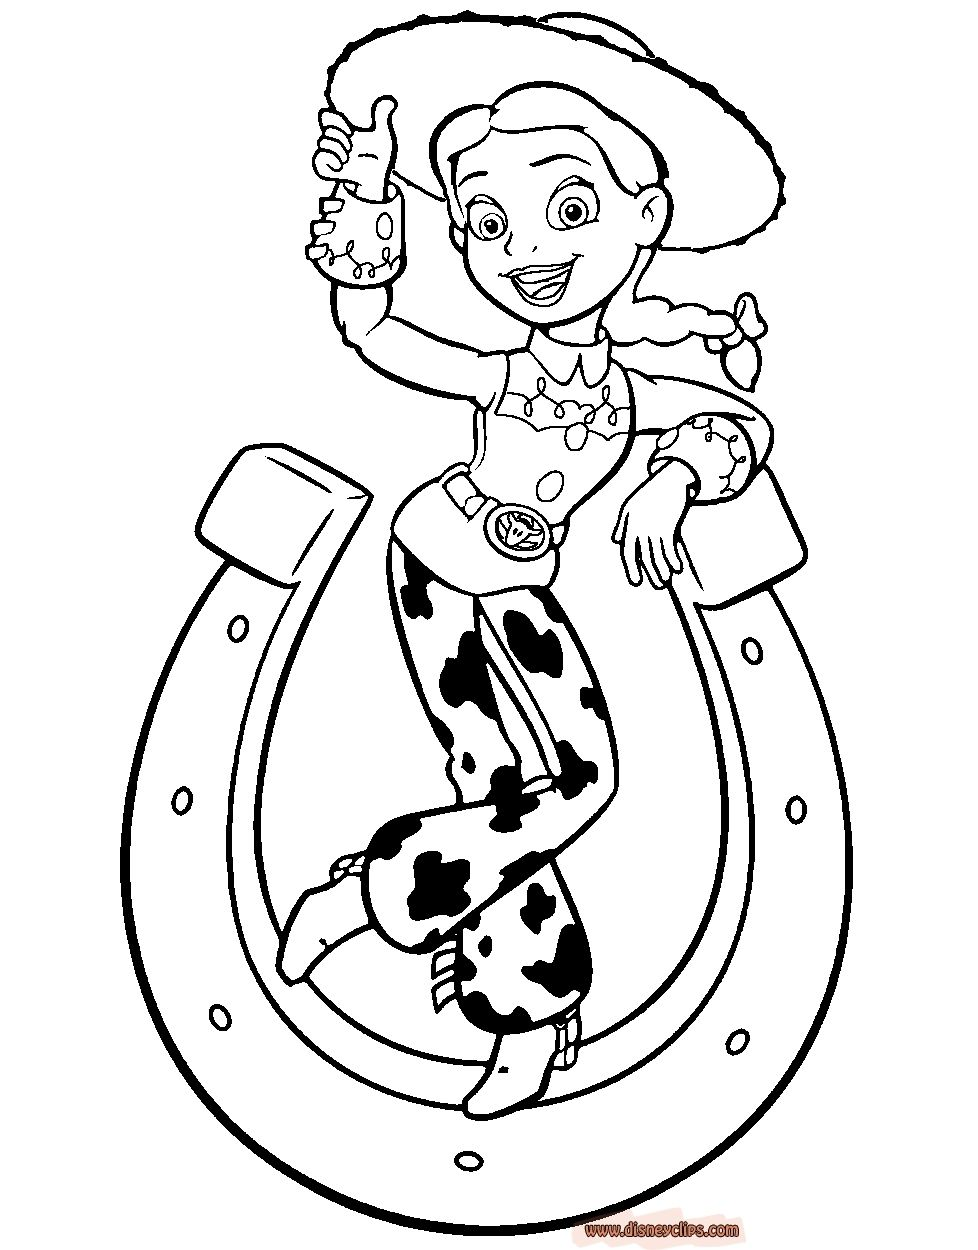 Disney Coloring Channel Toy Story Coloring Pages Disney Coloring Pages Creation Coloring Pages